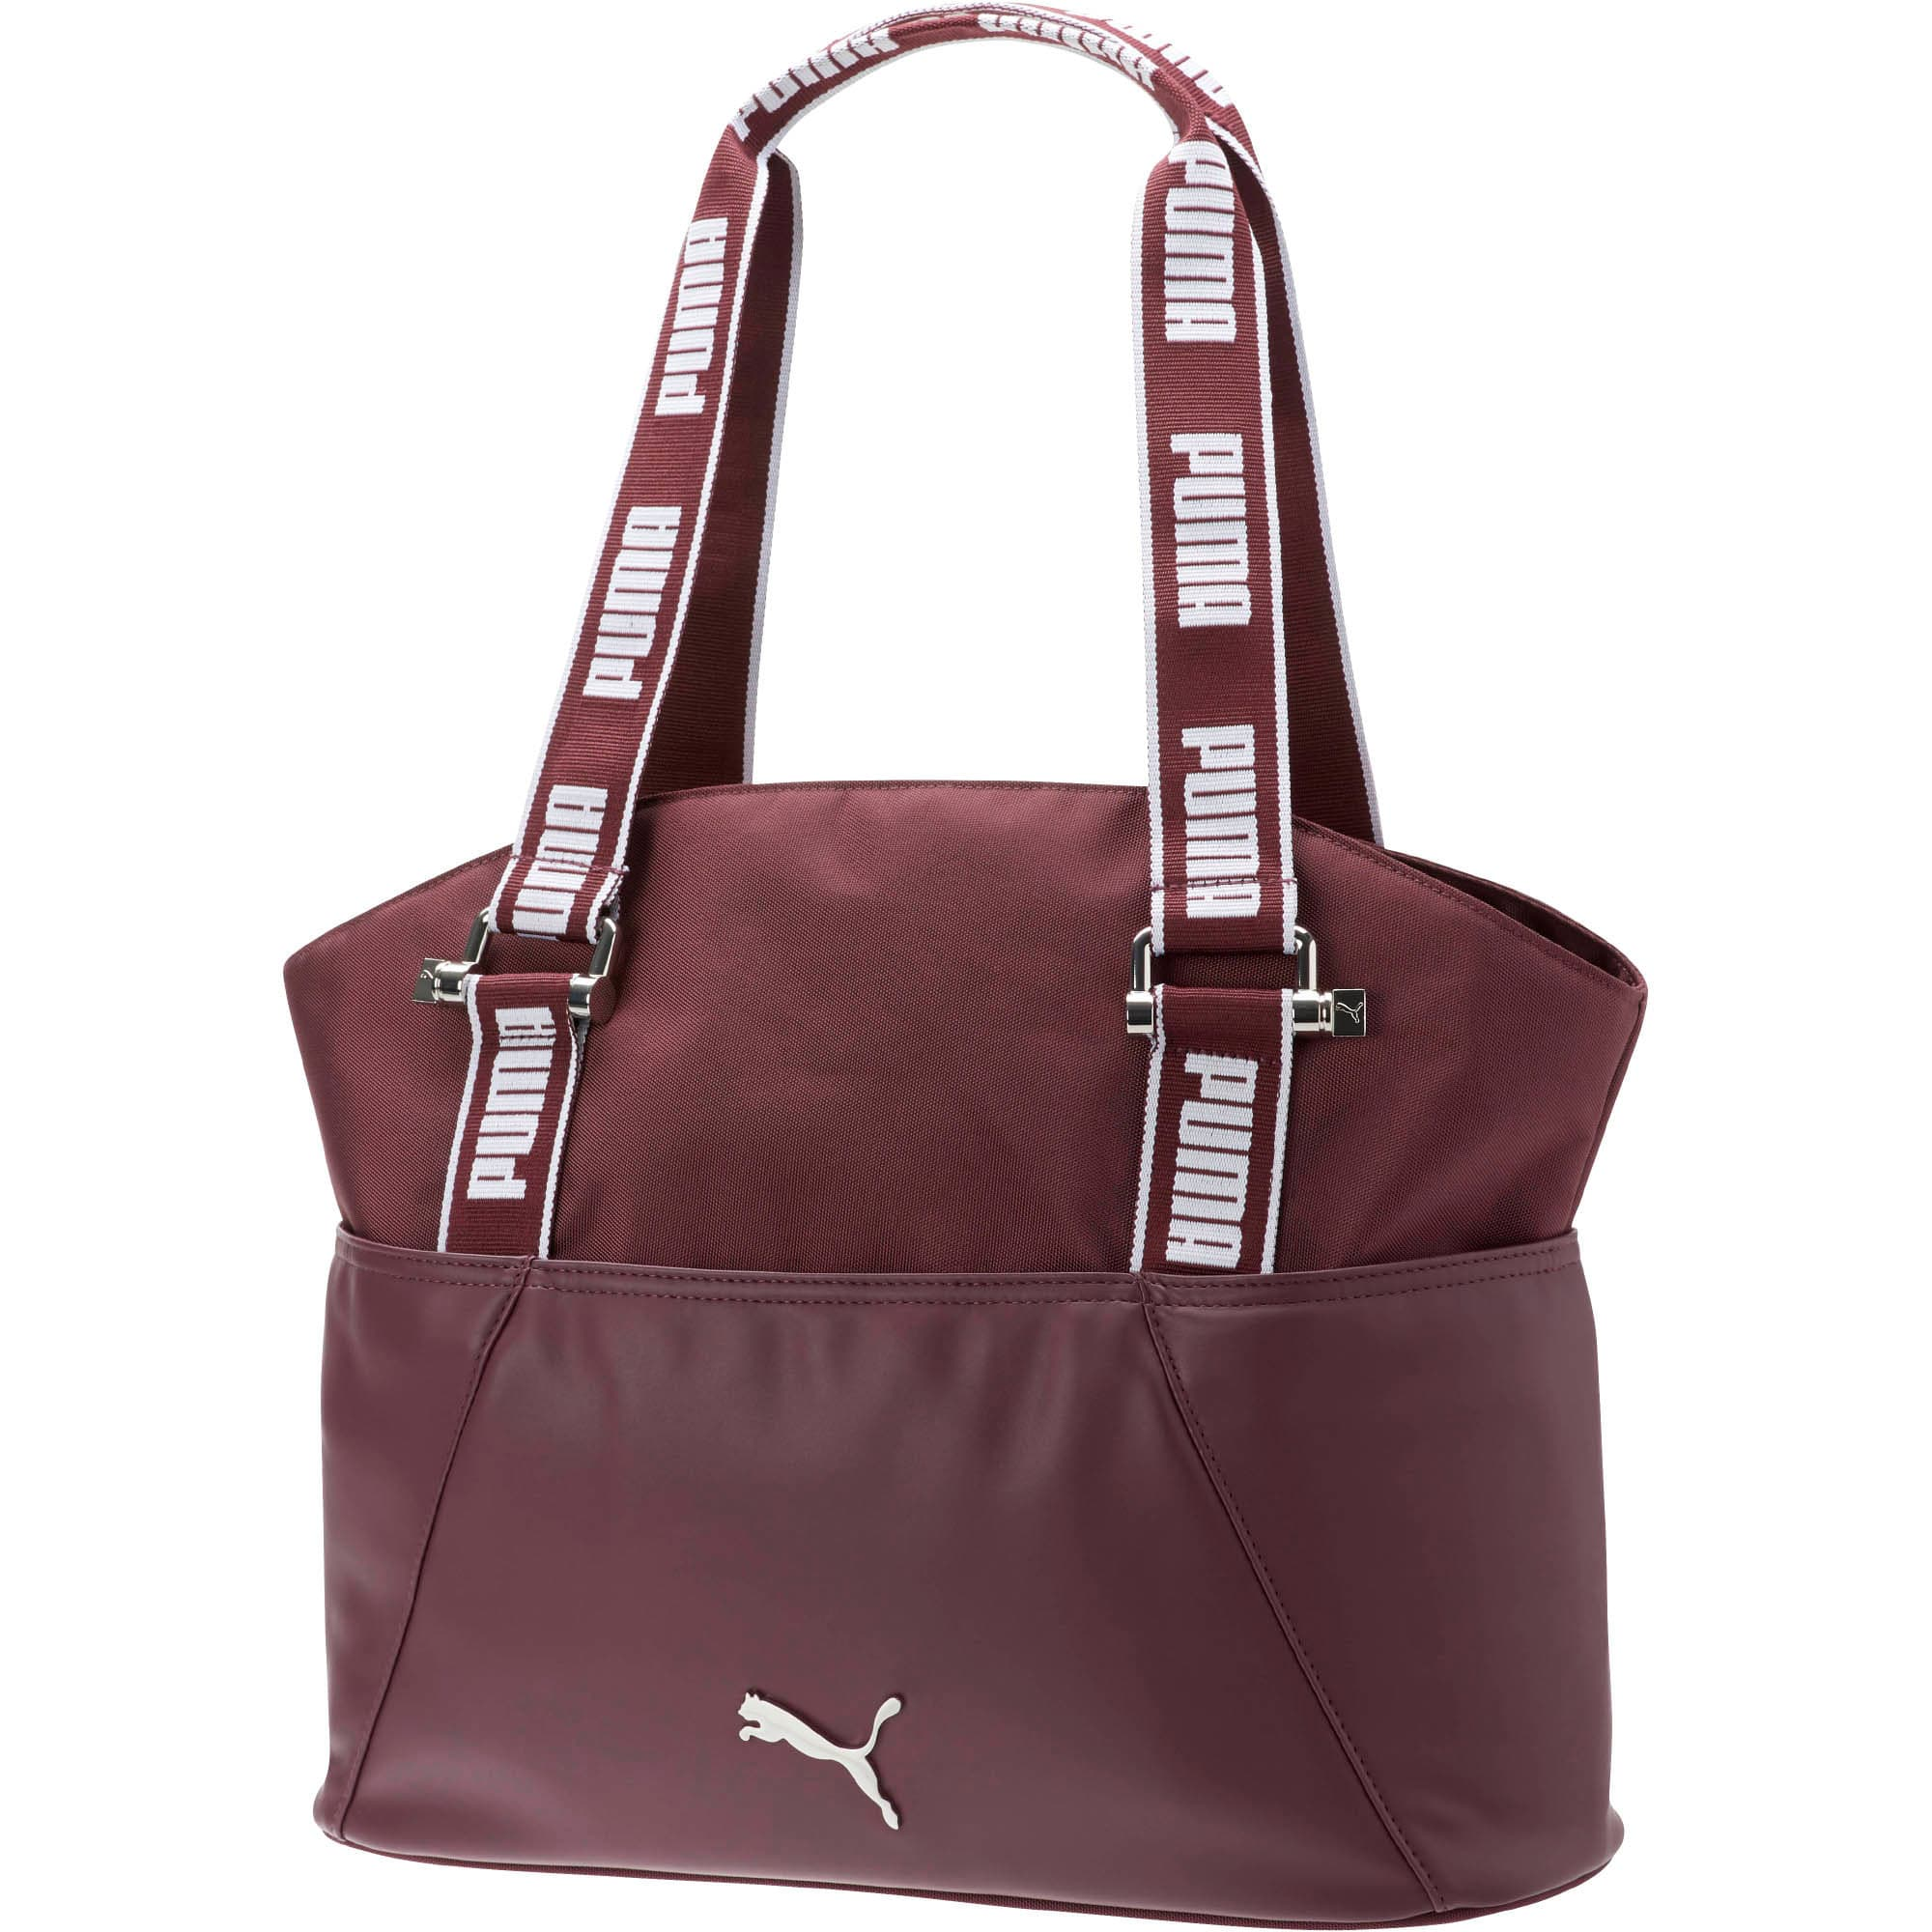 Marnie Tote Bag, Burgundy, large